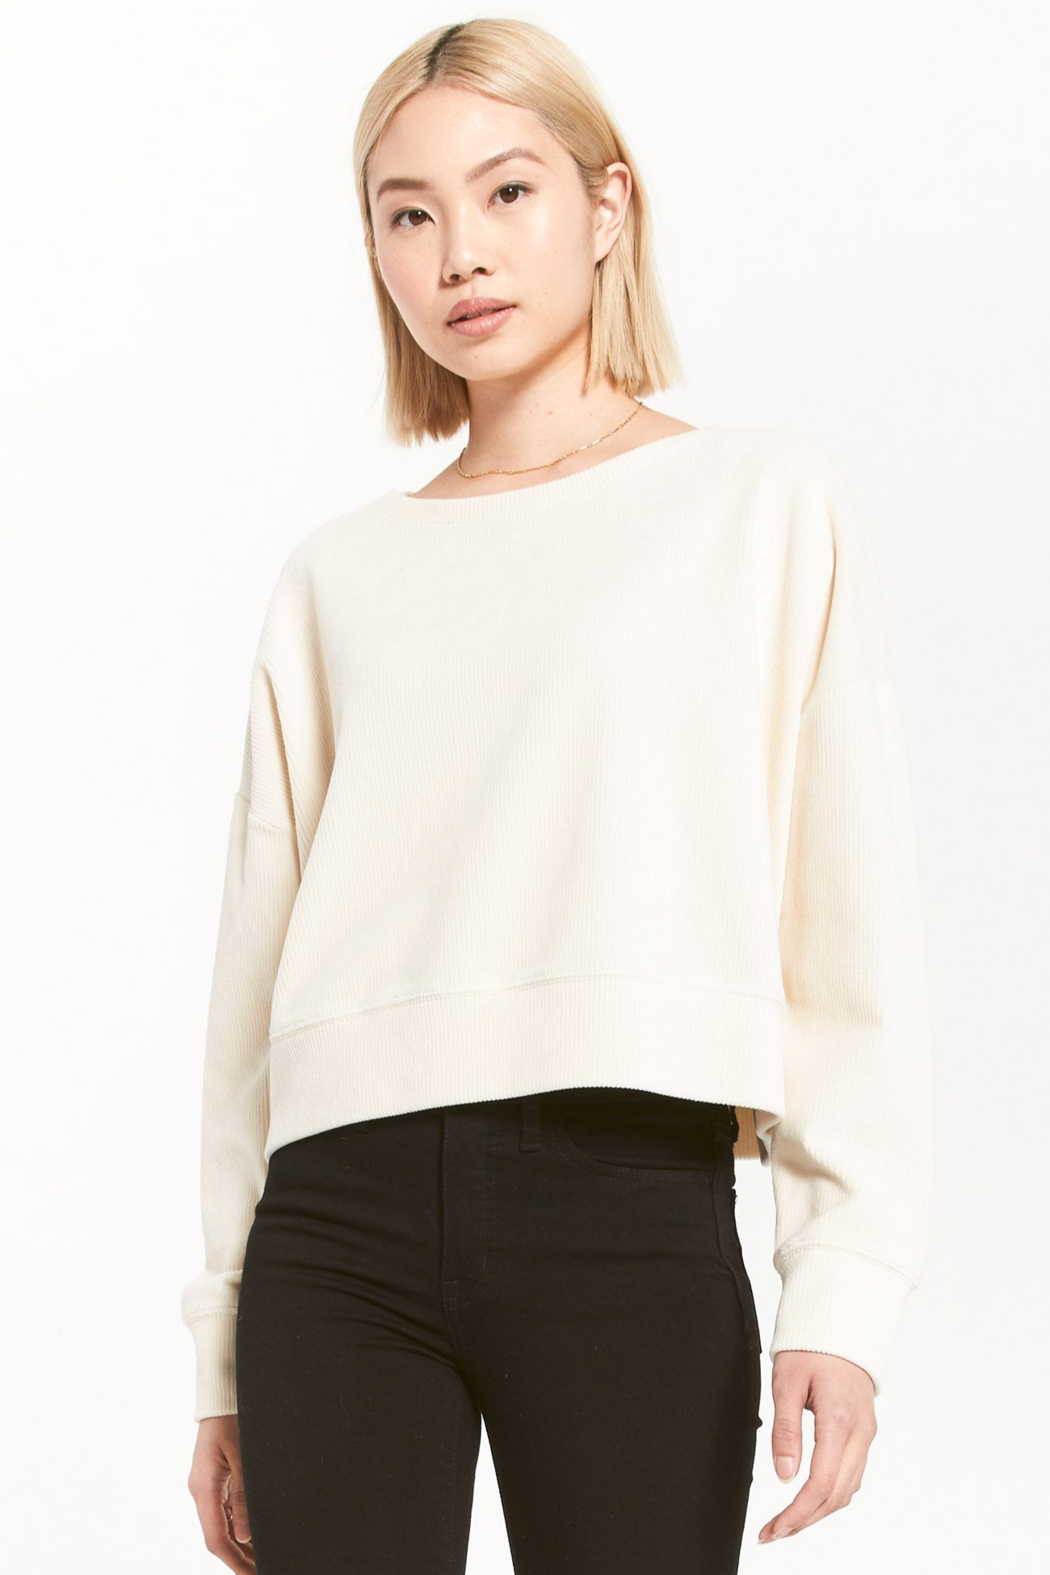 z supply Astrid Cord Pullover - Main Image